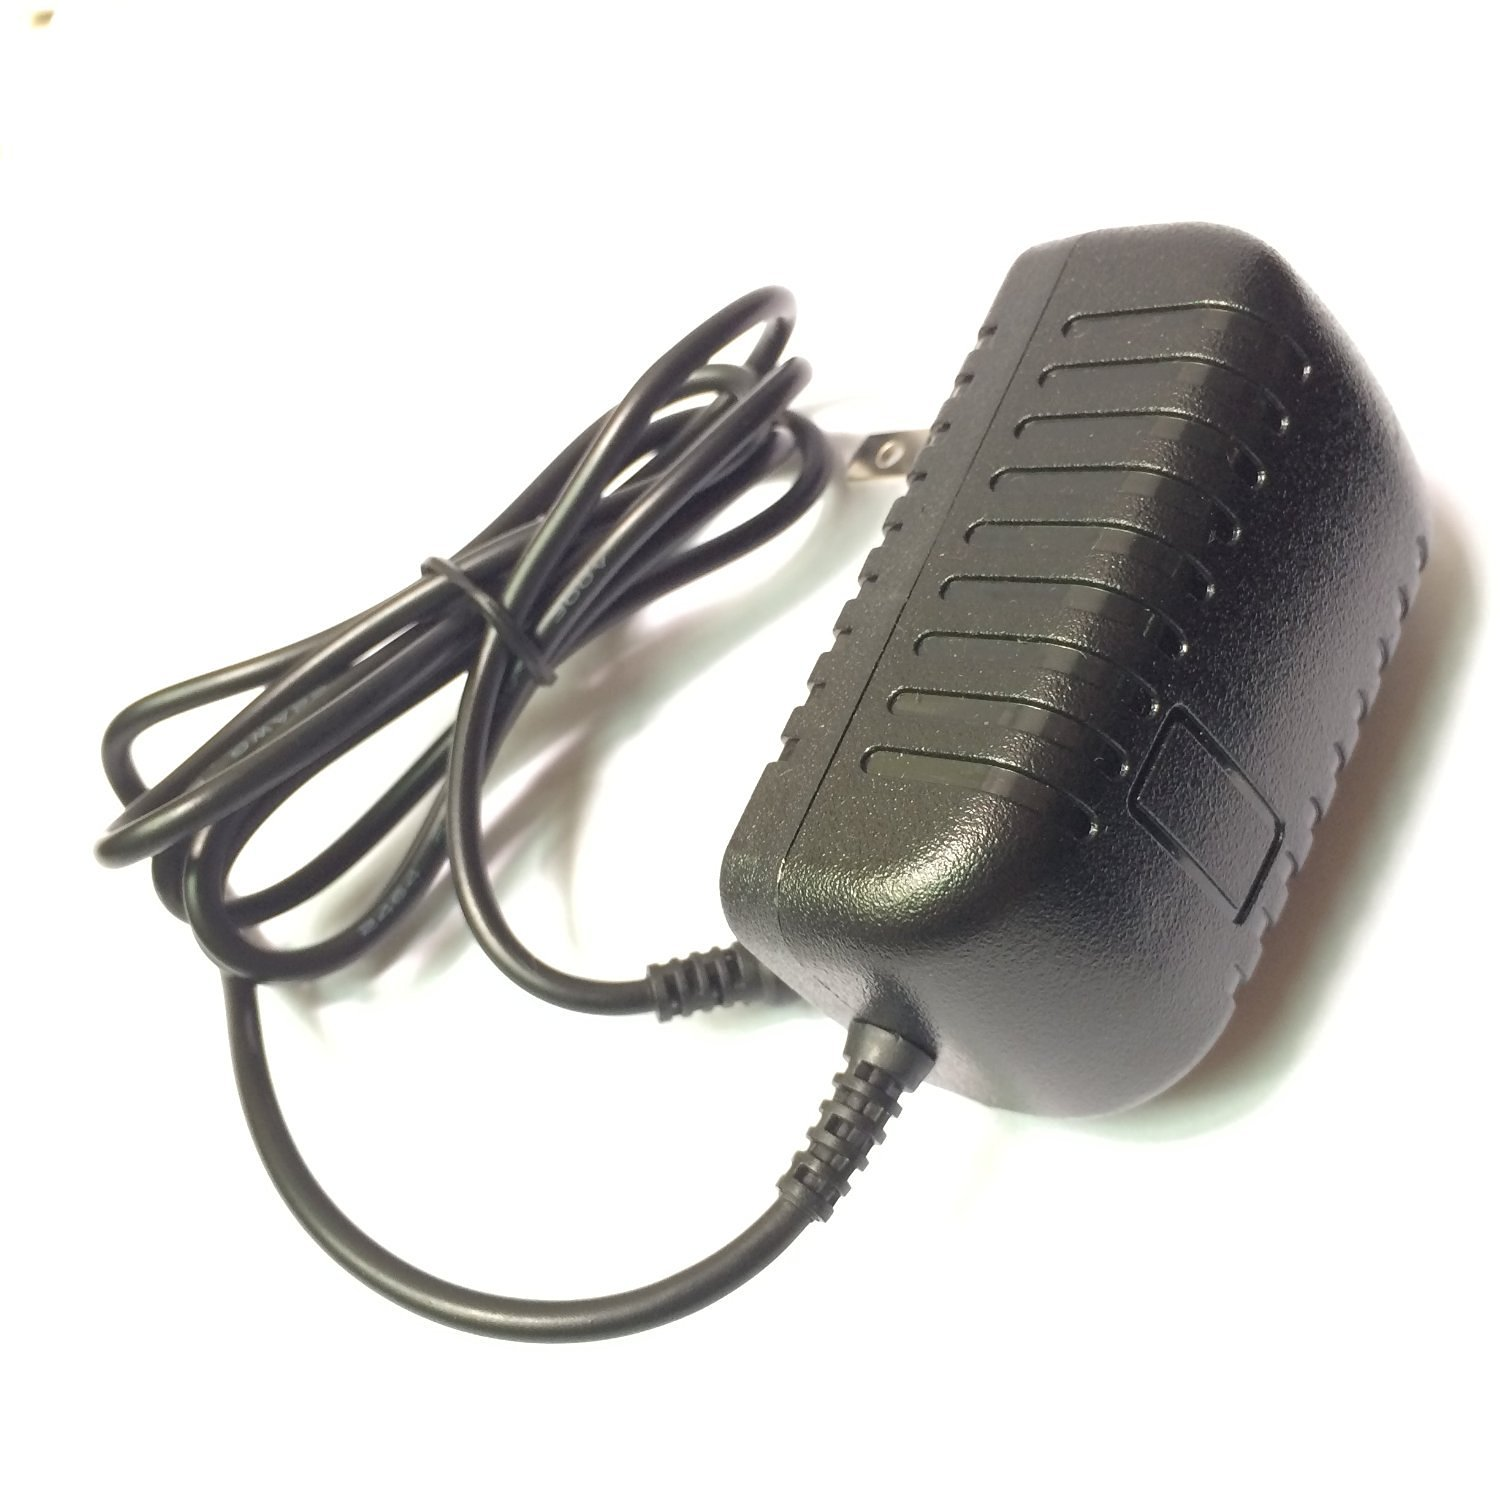 AC Adapter For GPX PC301B PC101B Portable Compact Disc CD Player 5V Power Supply